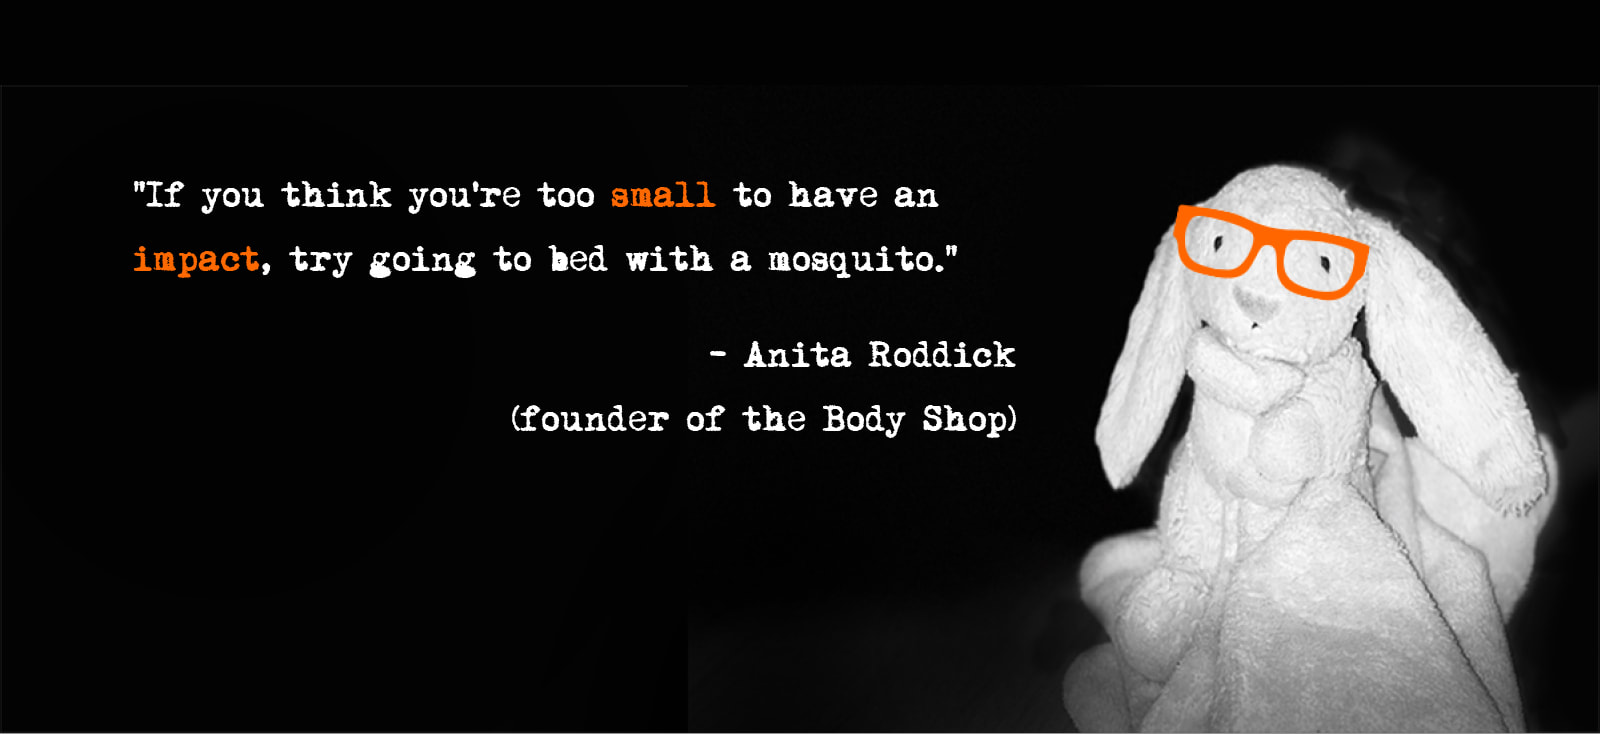 Rabbit Inspires quote from Anita Roddick.